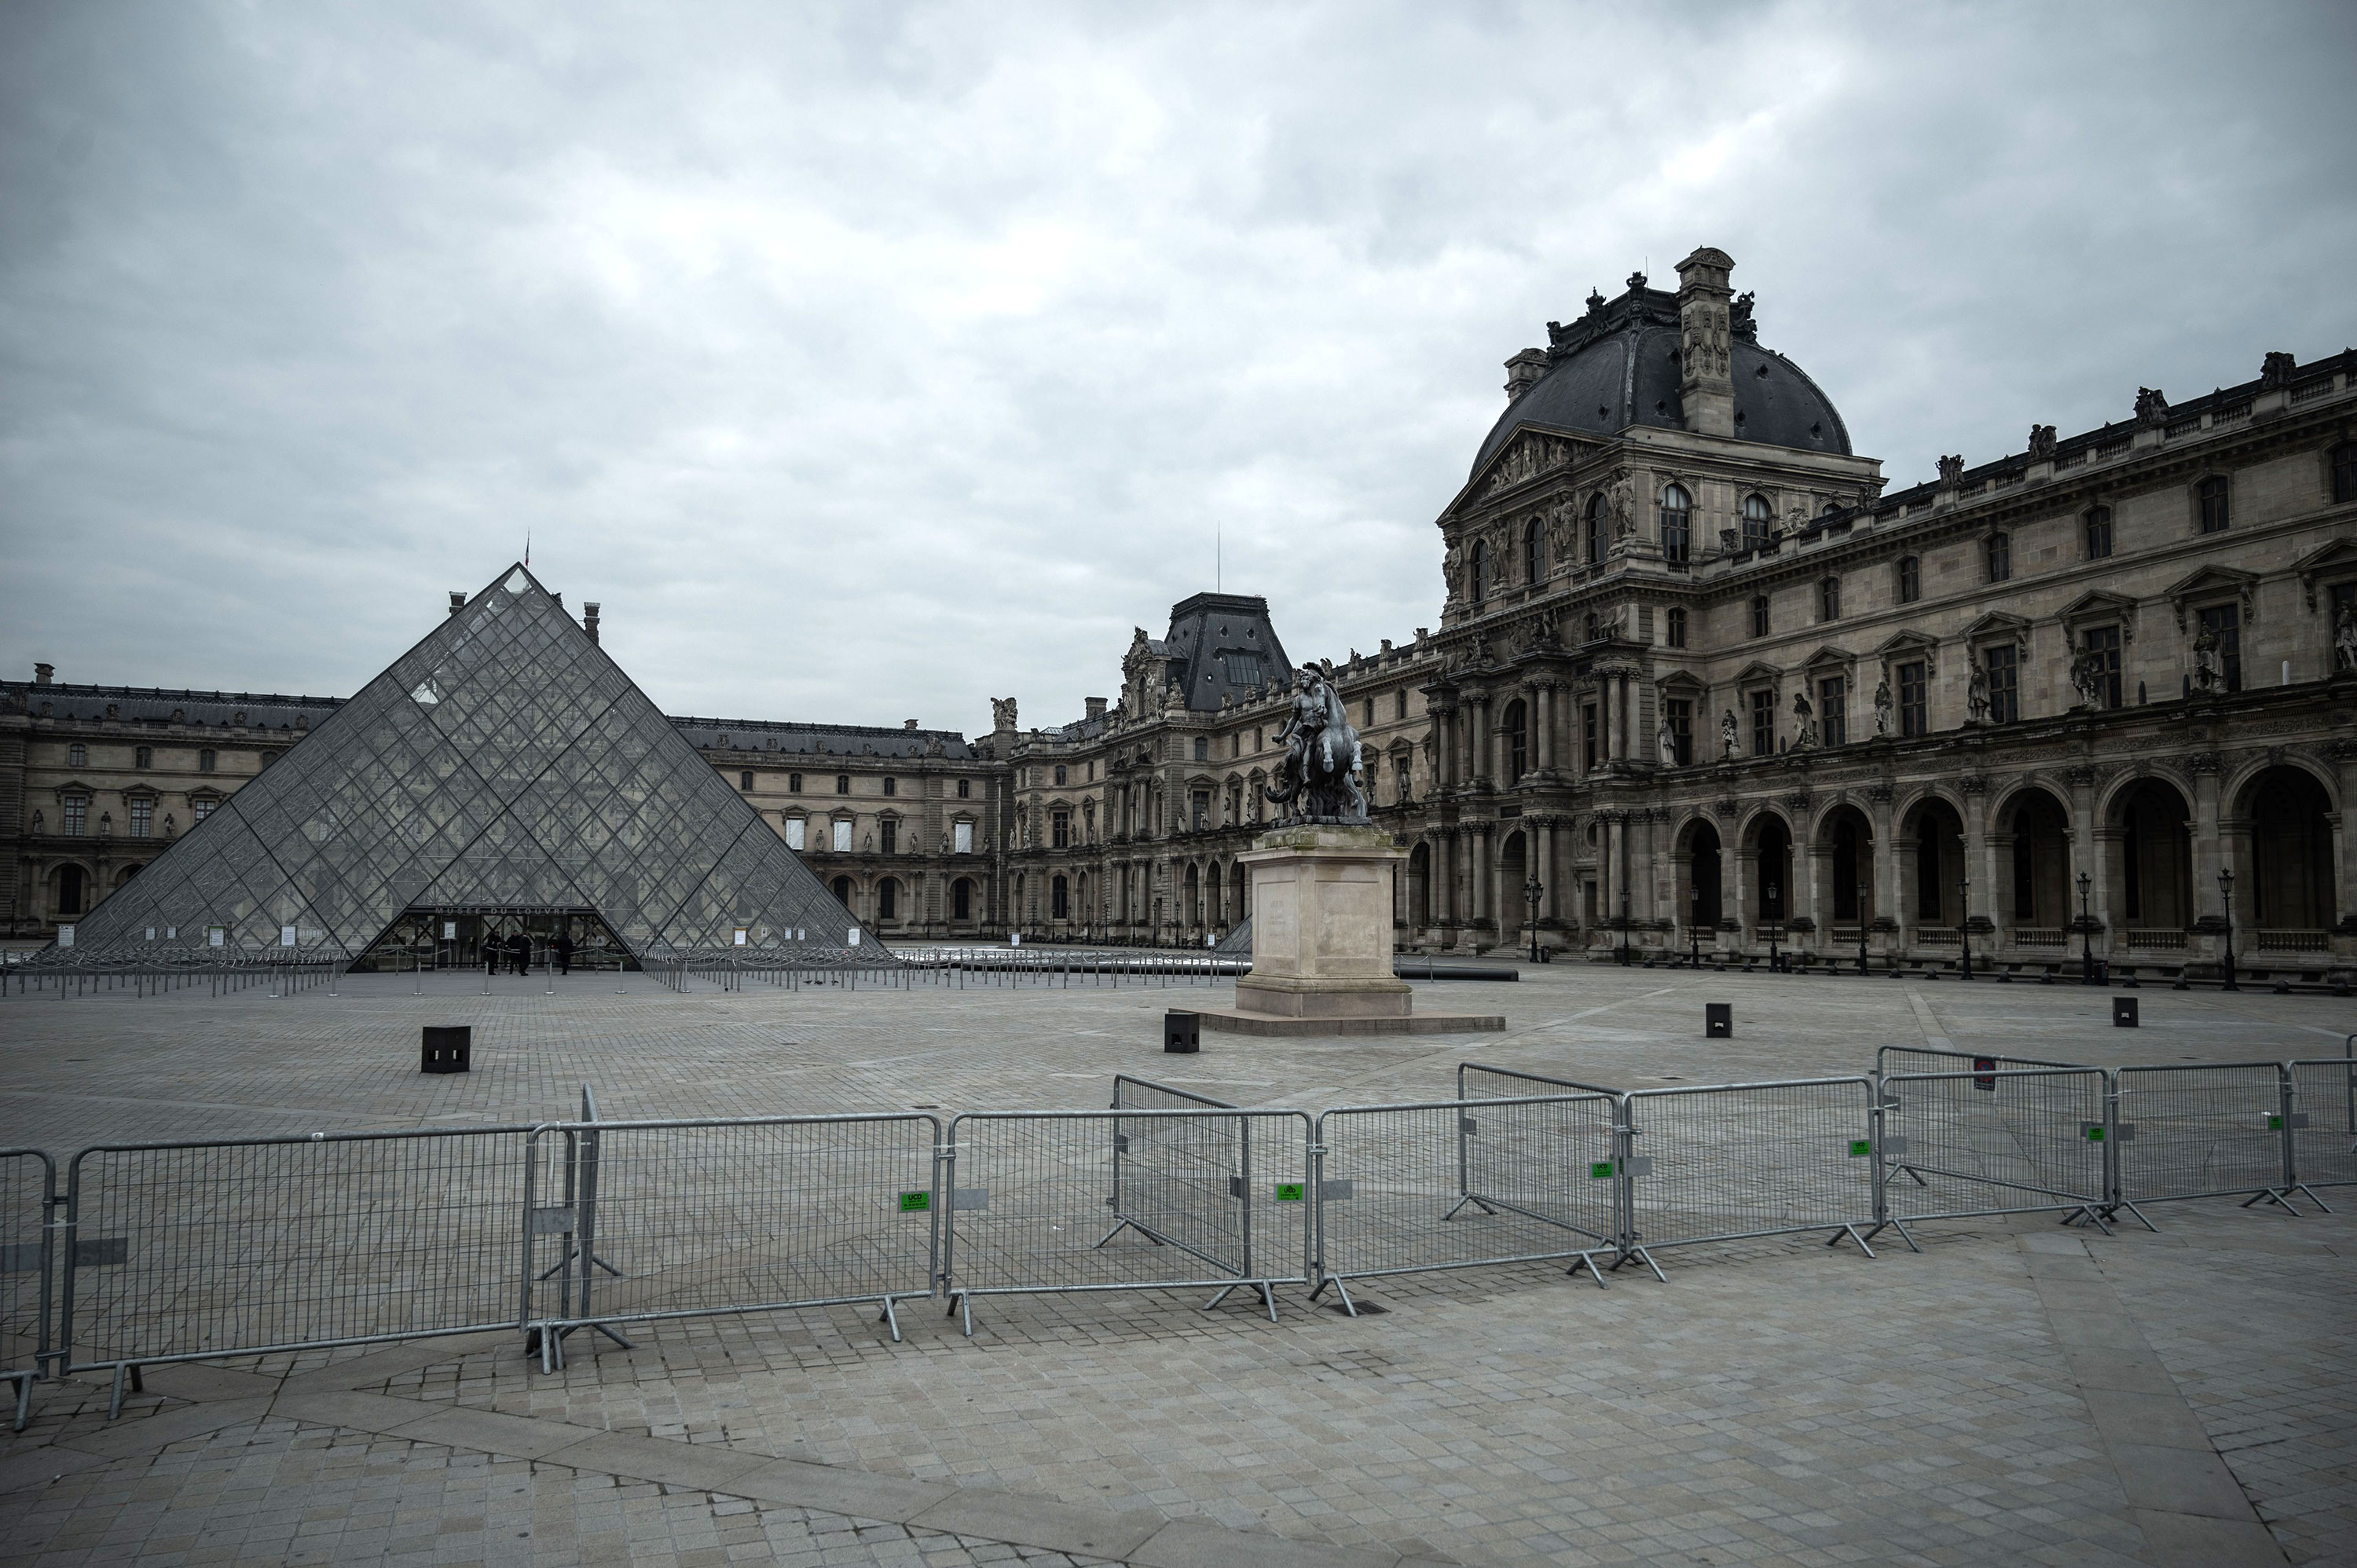 The square in front of the pyramid of the Louvre Museum in Paris is empty on March 18.